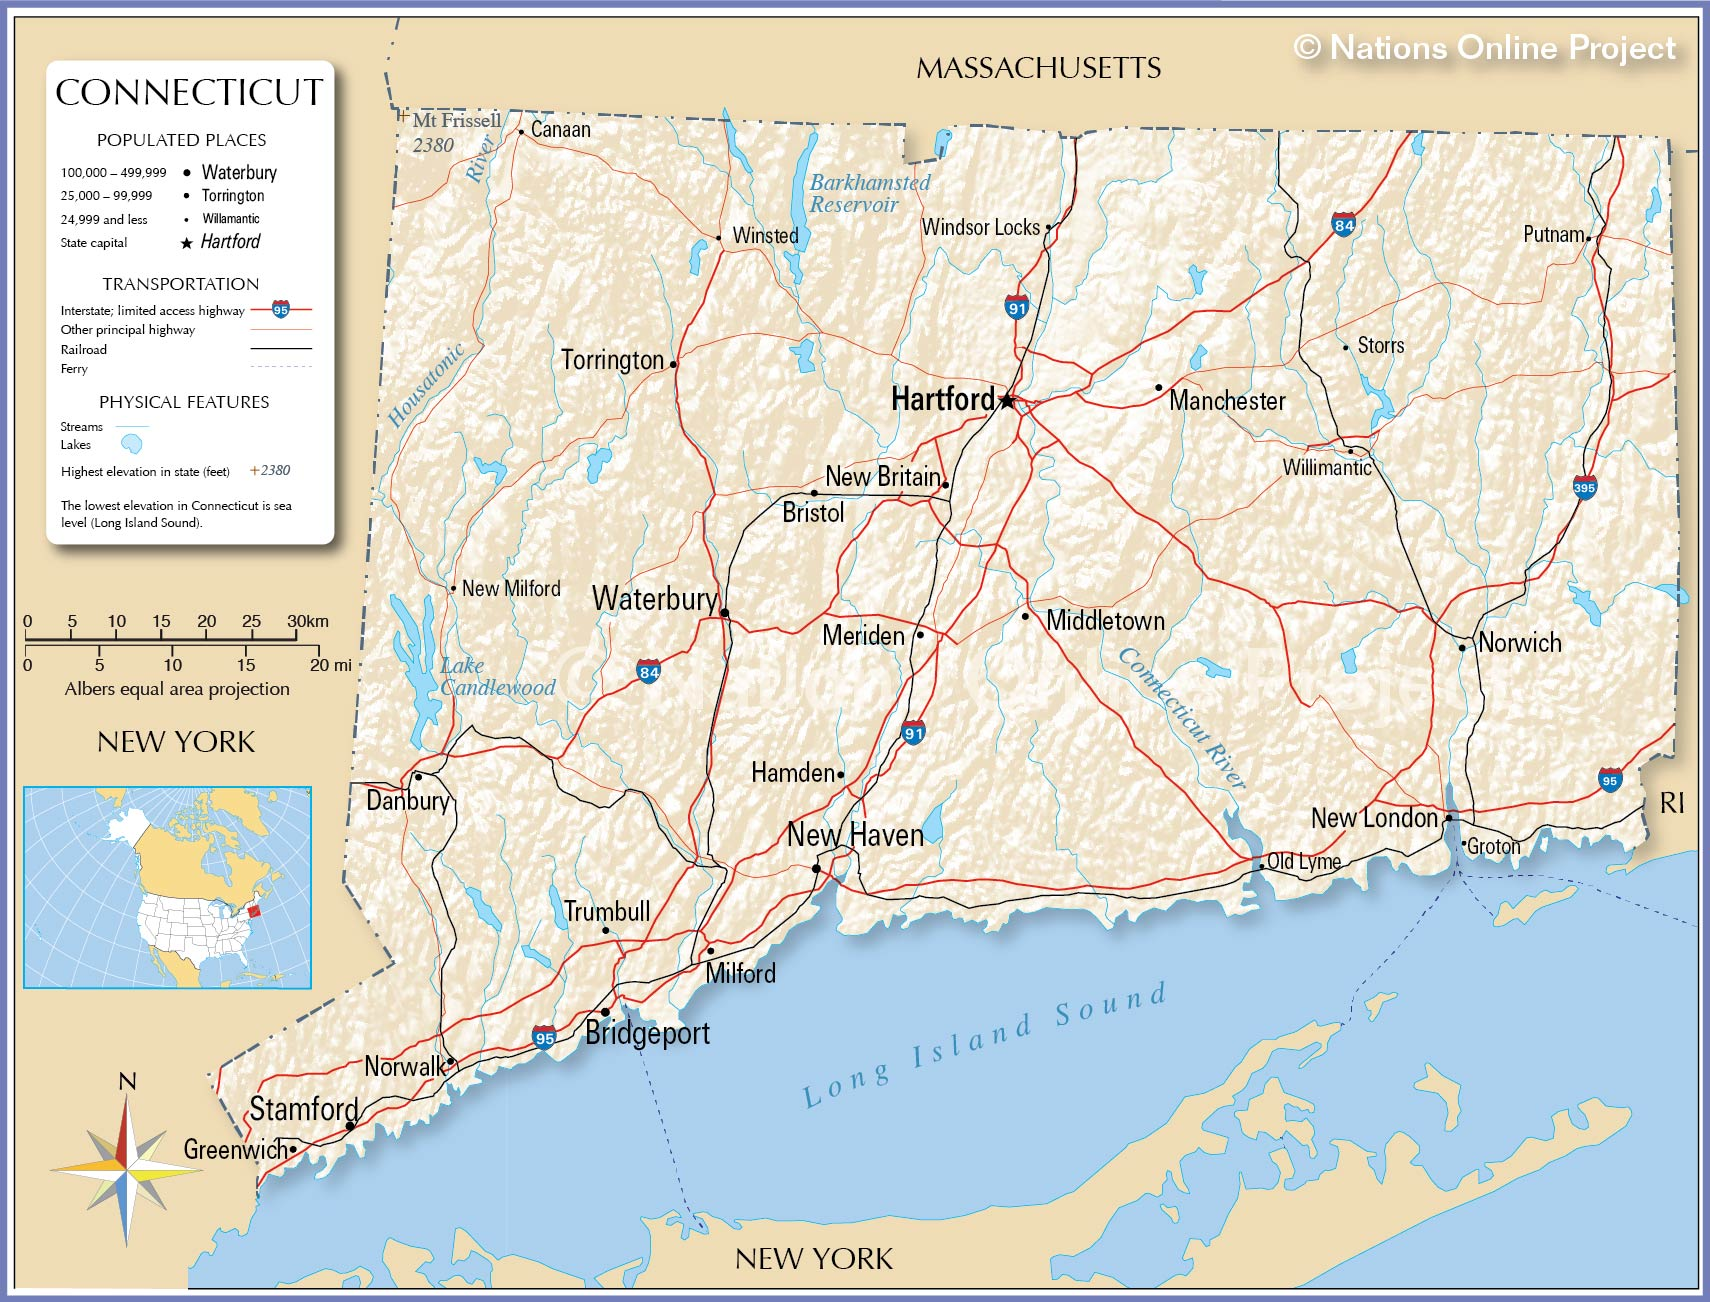 Reference Map Of Connecticut USA Nations Online Project - Us map connecticut